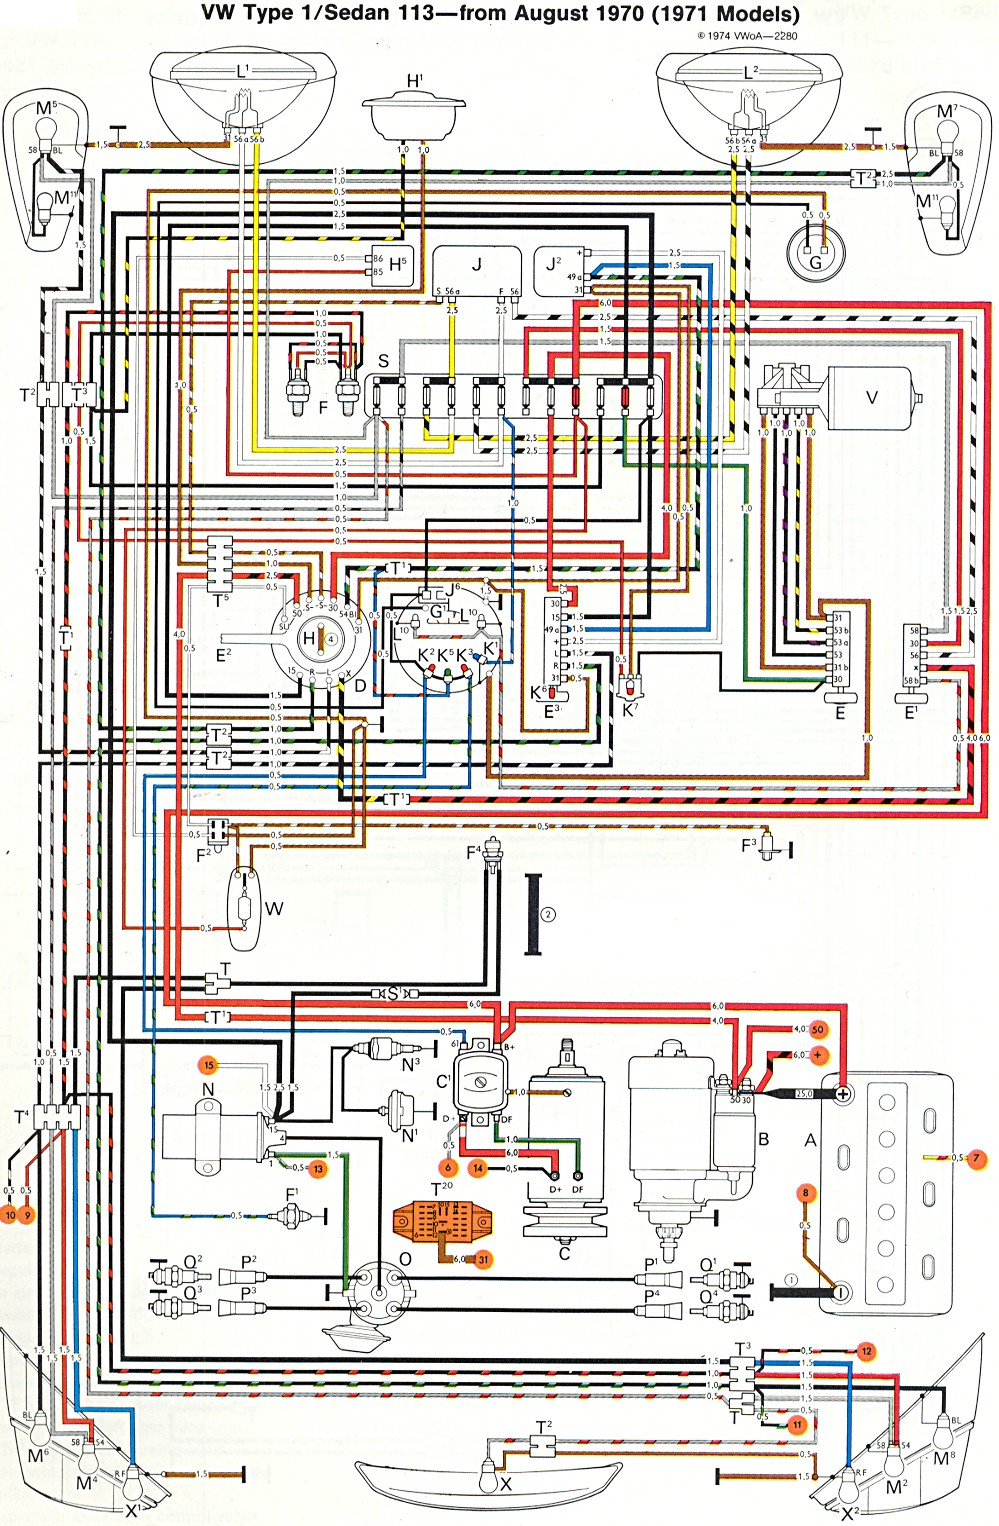 hight resolution of wiring diagram for 2002 volkswagen beetle wiring diagram row model volkswagen beetle fuse diagram 02